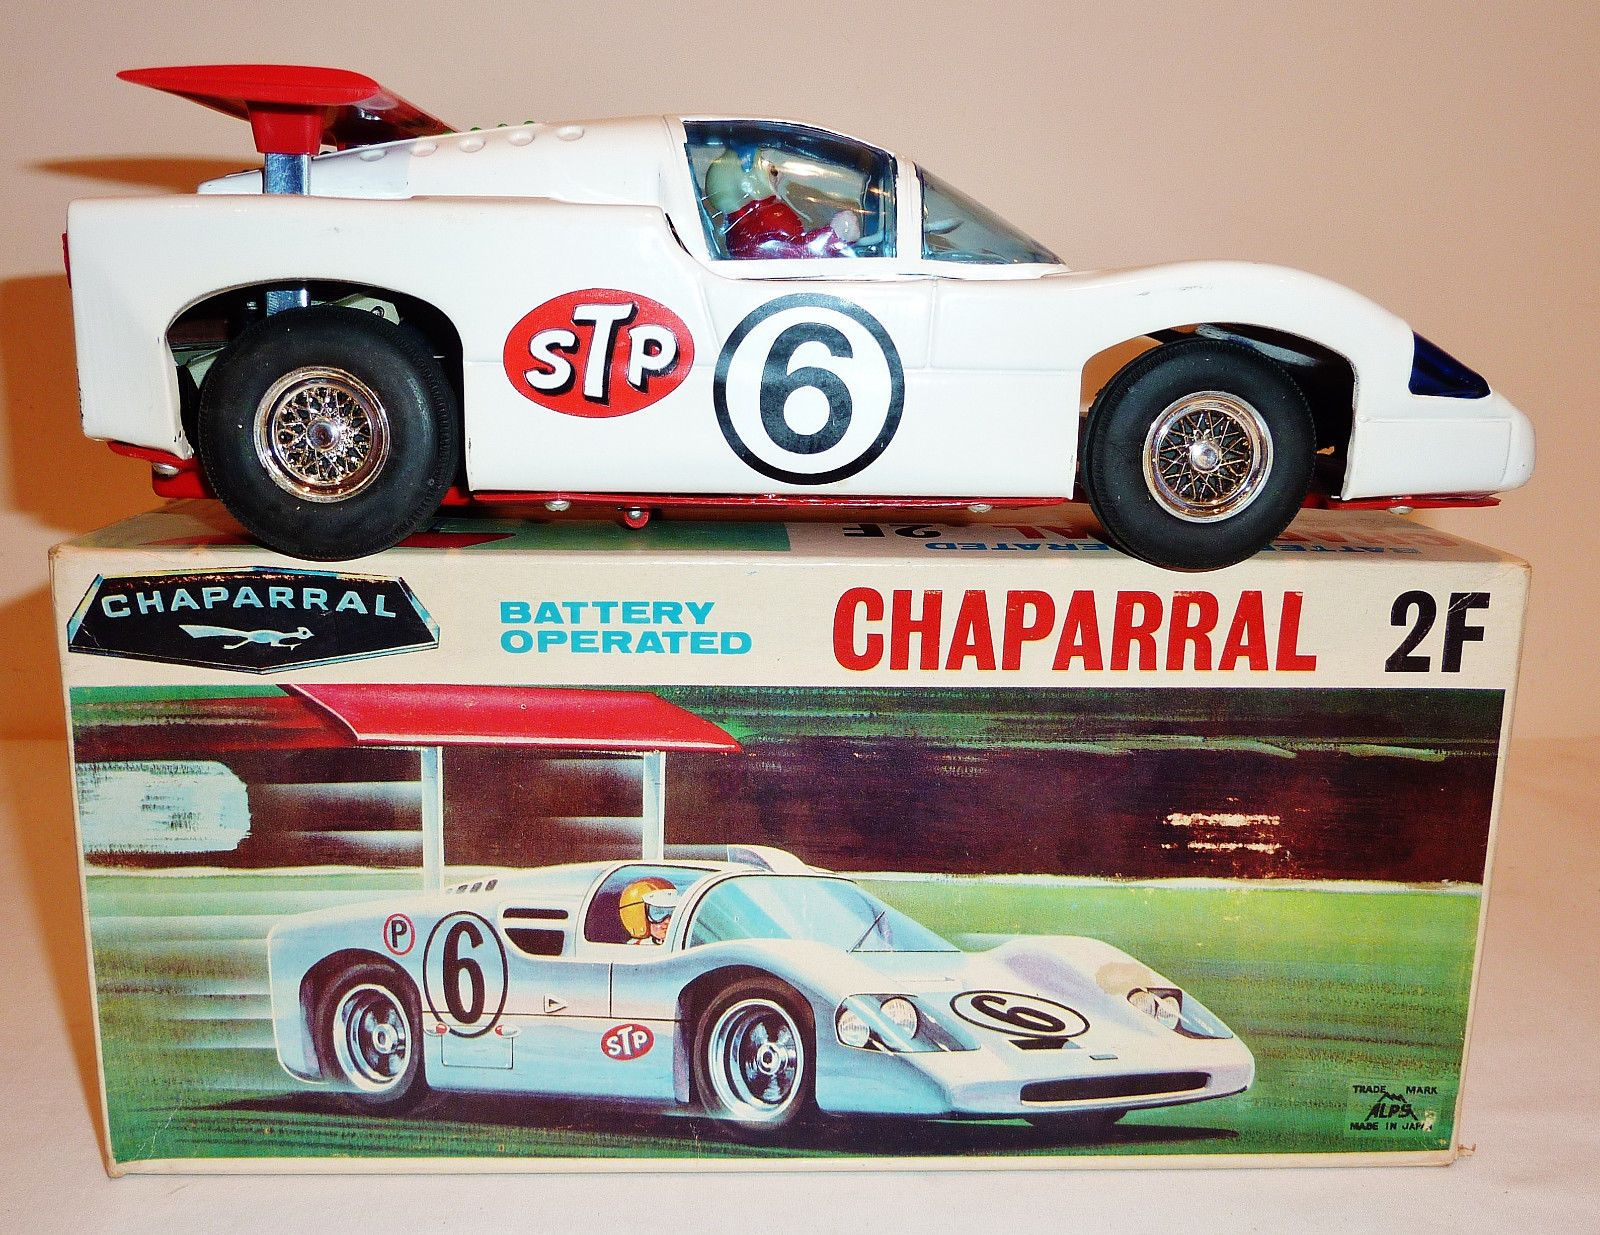 Alps chaparral race car battery operated toy from 60s ebay